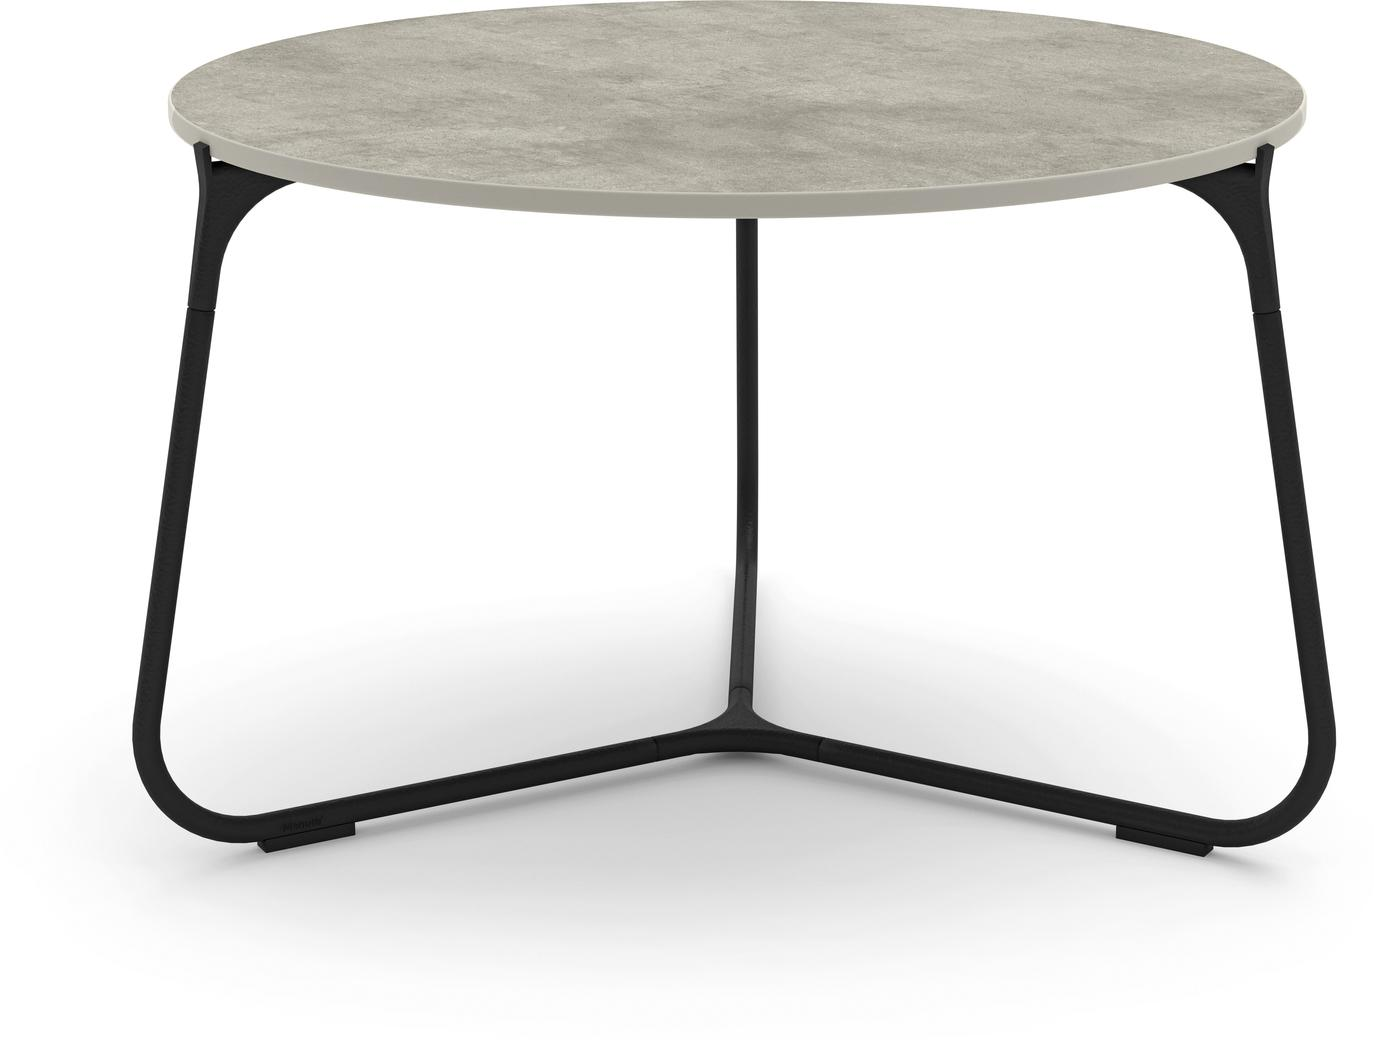 Mood coffee table 60 - lava - ceramic concrete